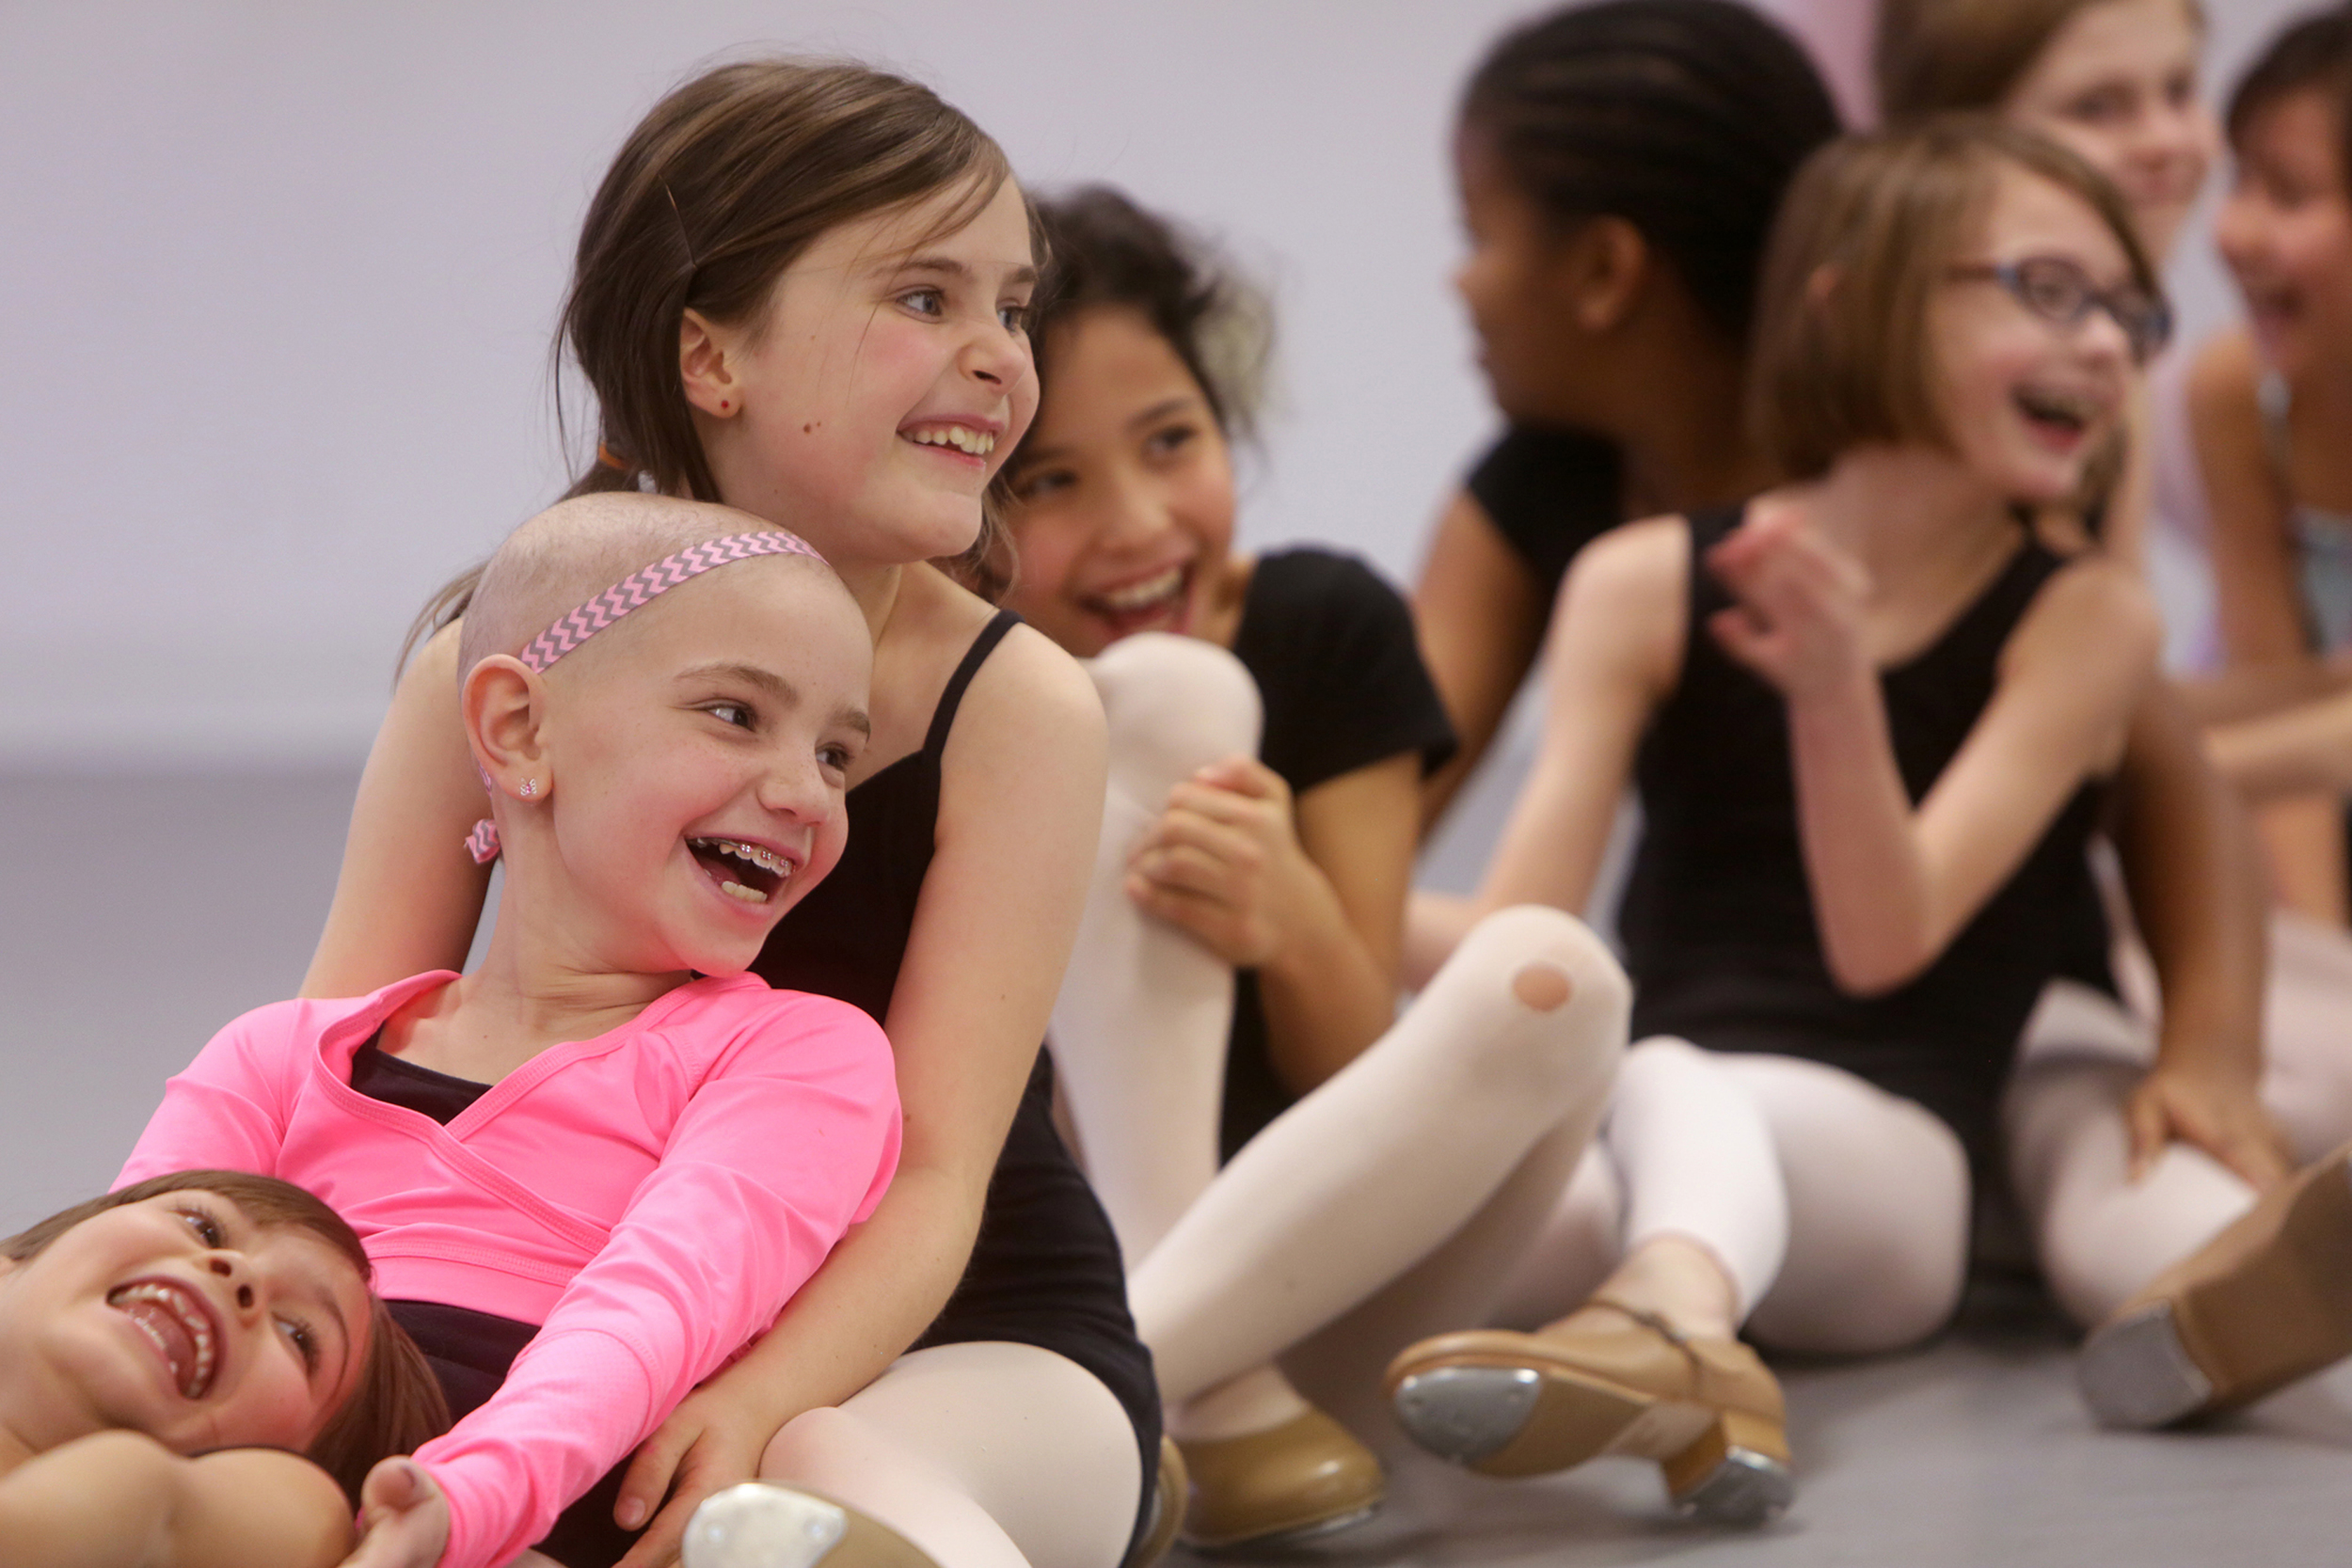 From left to right facing forward, Elena Bollman, 8, (lying down) Arianna Dougan 8, Madison Lamoureux 9, Anastasia Chostner, 8, and Madeline Miller, 8, (with glasses) laugh as they land after falling backwards as part of a dance number at St. Louis Academy of Dance in Olivette on Tuesday, Feb. 10, 2015. Dougan is currently undergoing treatments for neuroblastoma. When she was too sick to attend class, her teachers came to her as part of a dance therapy program.